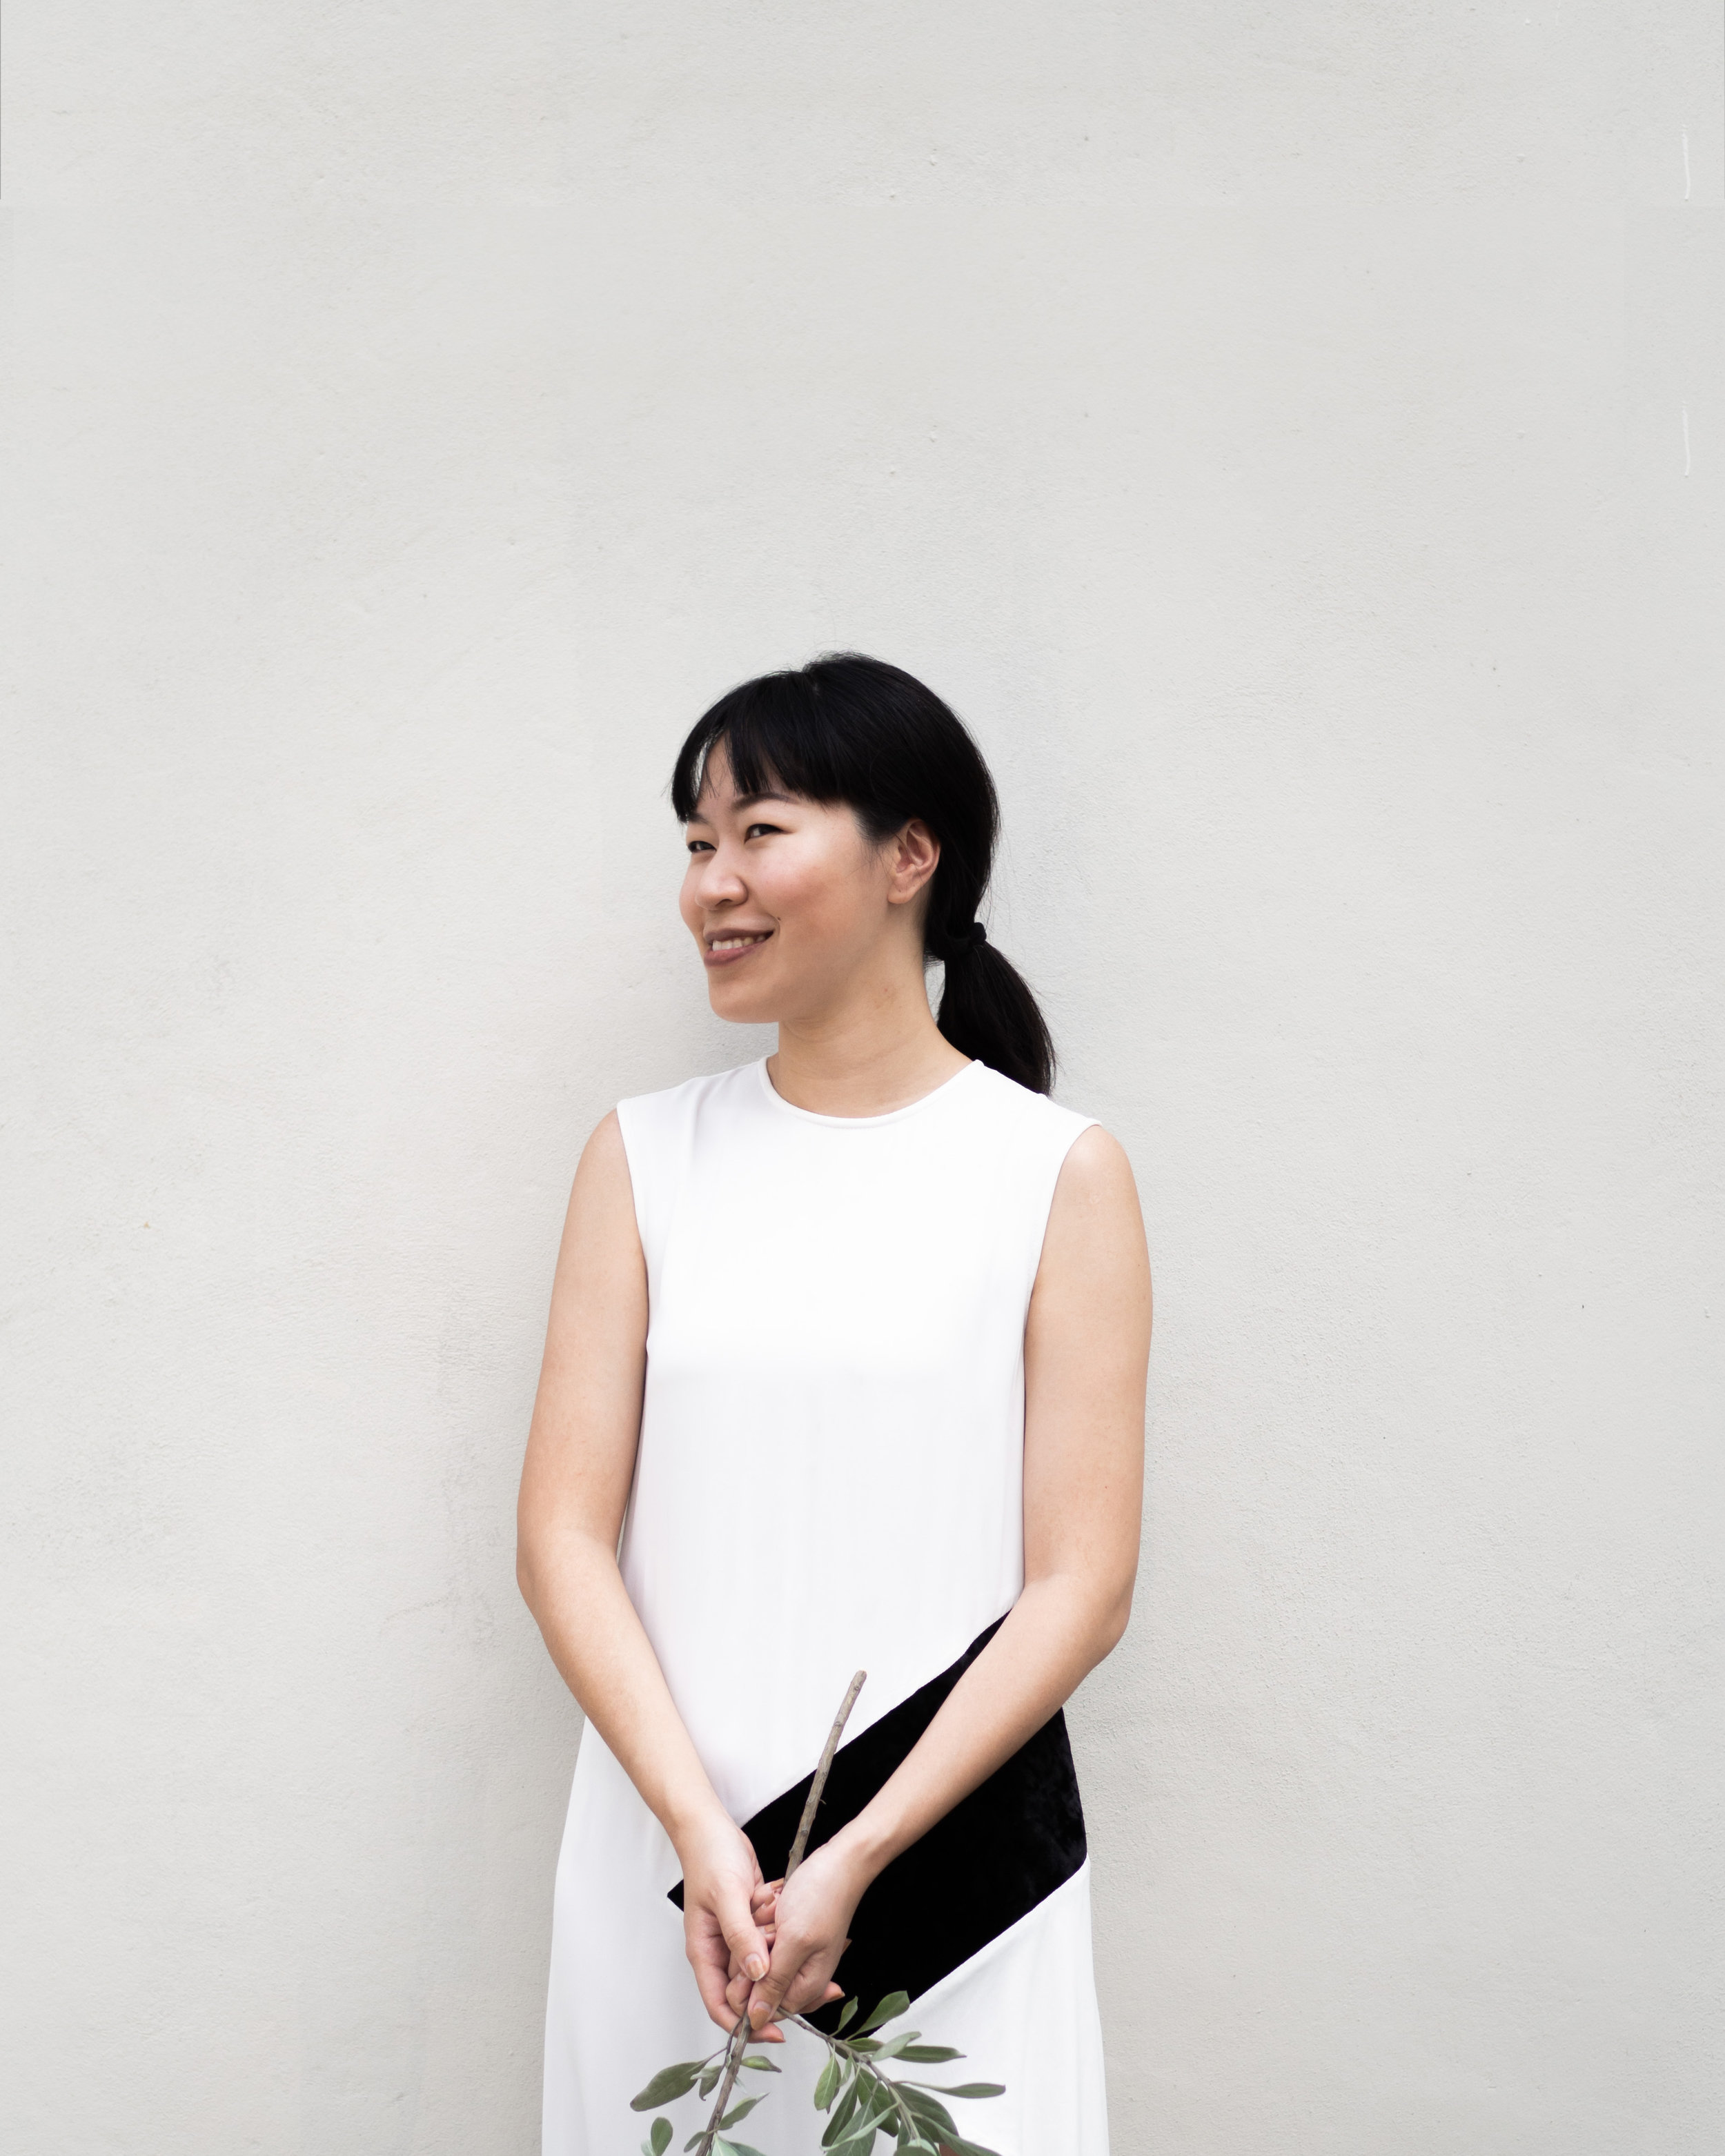 Poy is design director and co-founding principal at PHKA since 2013. After graduated with an interior architecture degree at Chulalongkorn University, she got a working experience in Singapore as an interior designer for luxury hospitality industry, then moved to London to study in Creative and Cultural Entrepreneurship at Goldsmiths. She also got various experiences prior PHKA's inception, consisting working at Zita Elze flowers, Event Flowers training at Judith Blacklock, and conducting an event in London.  Poy is the head of the design unit, overseeing all of PHKA's design-related matters.  vissata@phkastudio.com